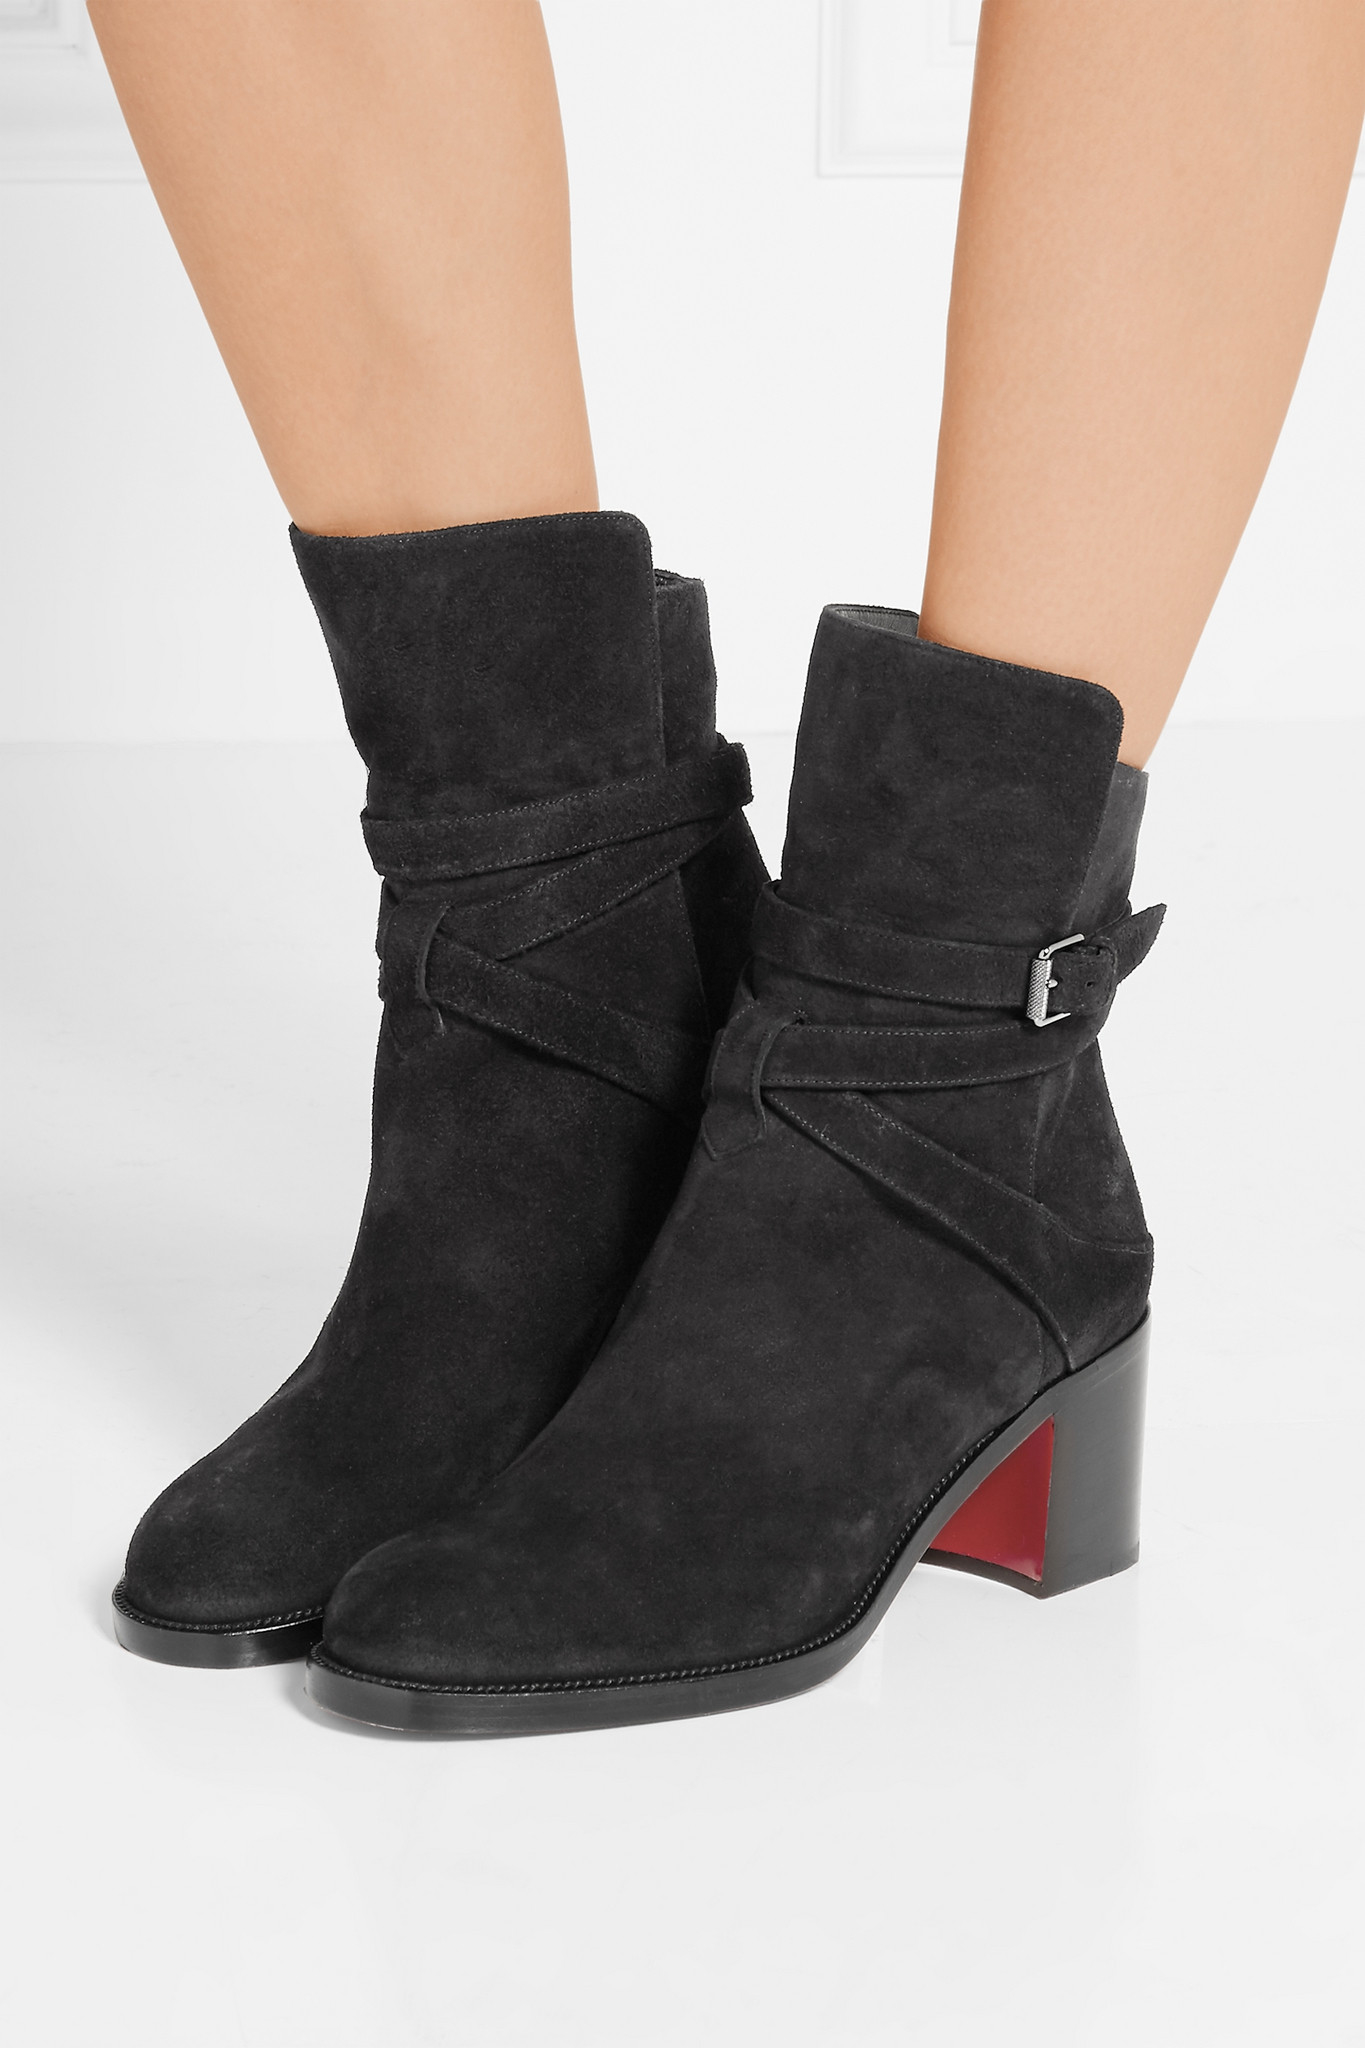 245a3c37d988 Christian Louboutin Karistrap 70 Suede Ankle Boots in Natural - Lyst